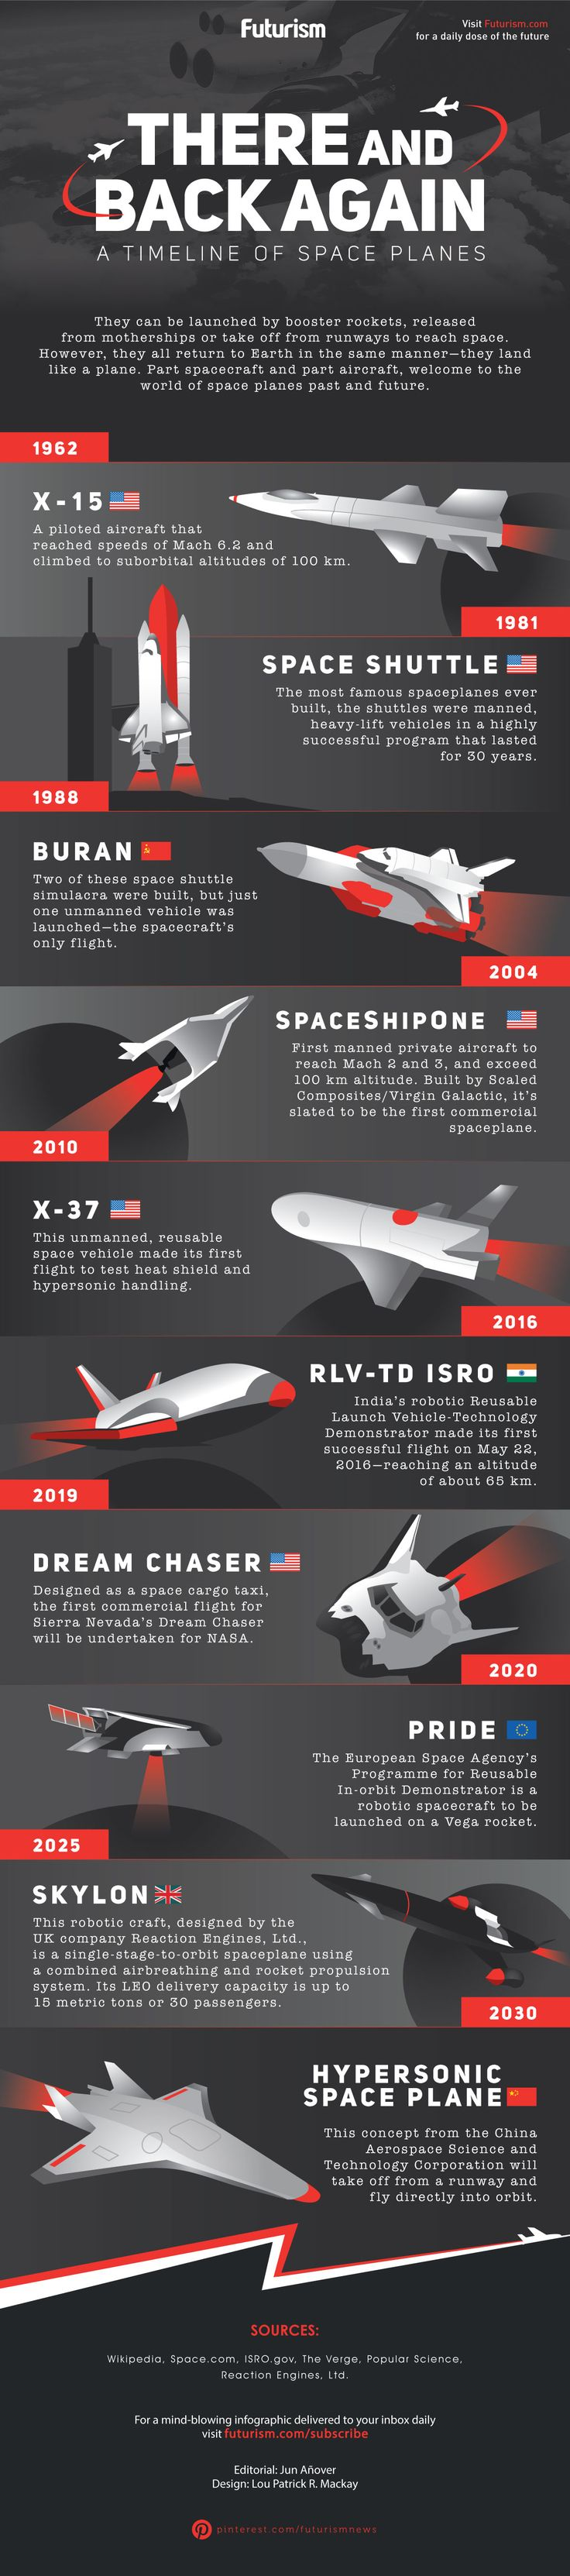 They're the ultimate spacecraft: they launch into orbit and land on the Earth like an airplane.   Meet the space planes.  https://futurism.com/images/there-and-back-again-a-timeline-of-space-planes-infographic/?utm_campaign=coschedule&utm_source=pinterest&utm_medium=Futurism&utm_content=There%20And%20Back%20Again%3A%20A%20Timeline%20of%20Space%20Planes%20%5BINFOGRAPHIC%5D